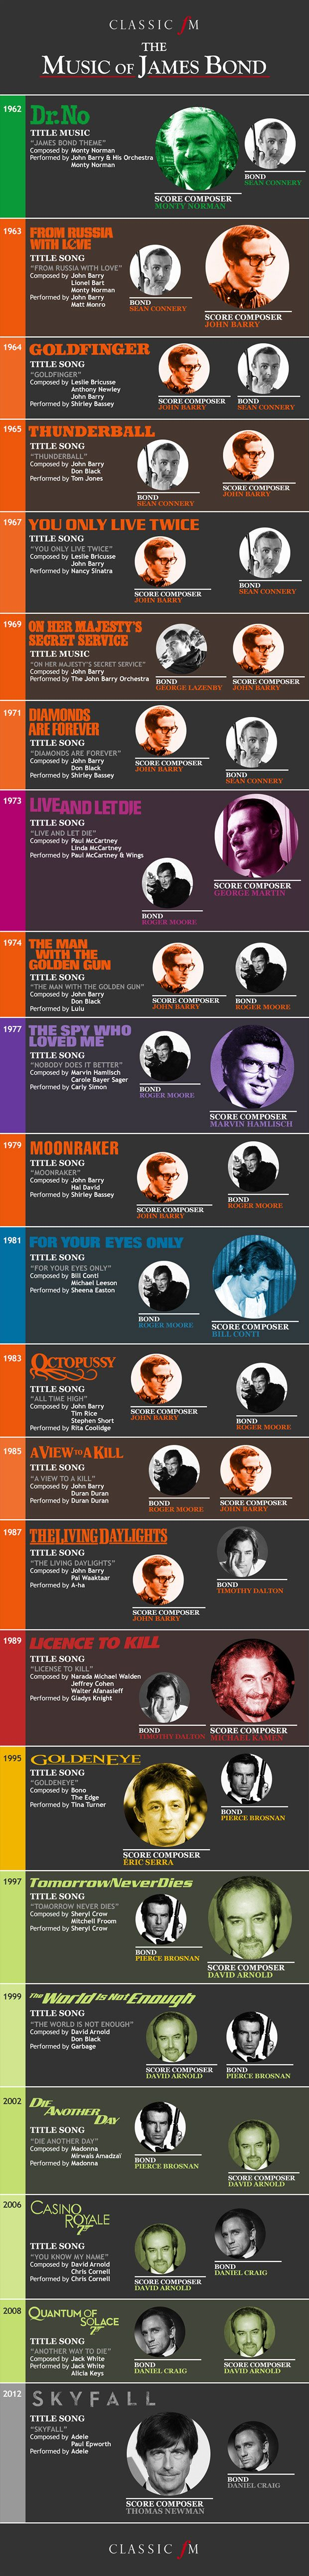 To celebrate our special Bond music interview with David Arnold and Thomas Newman, we've created a special infographic for all the soundtracks and songs from the James Bond films.